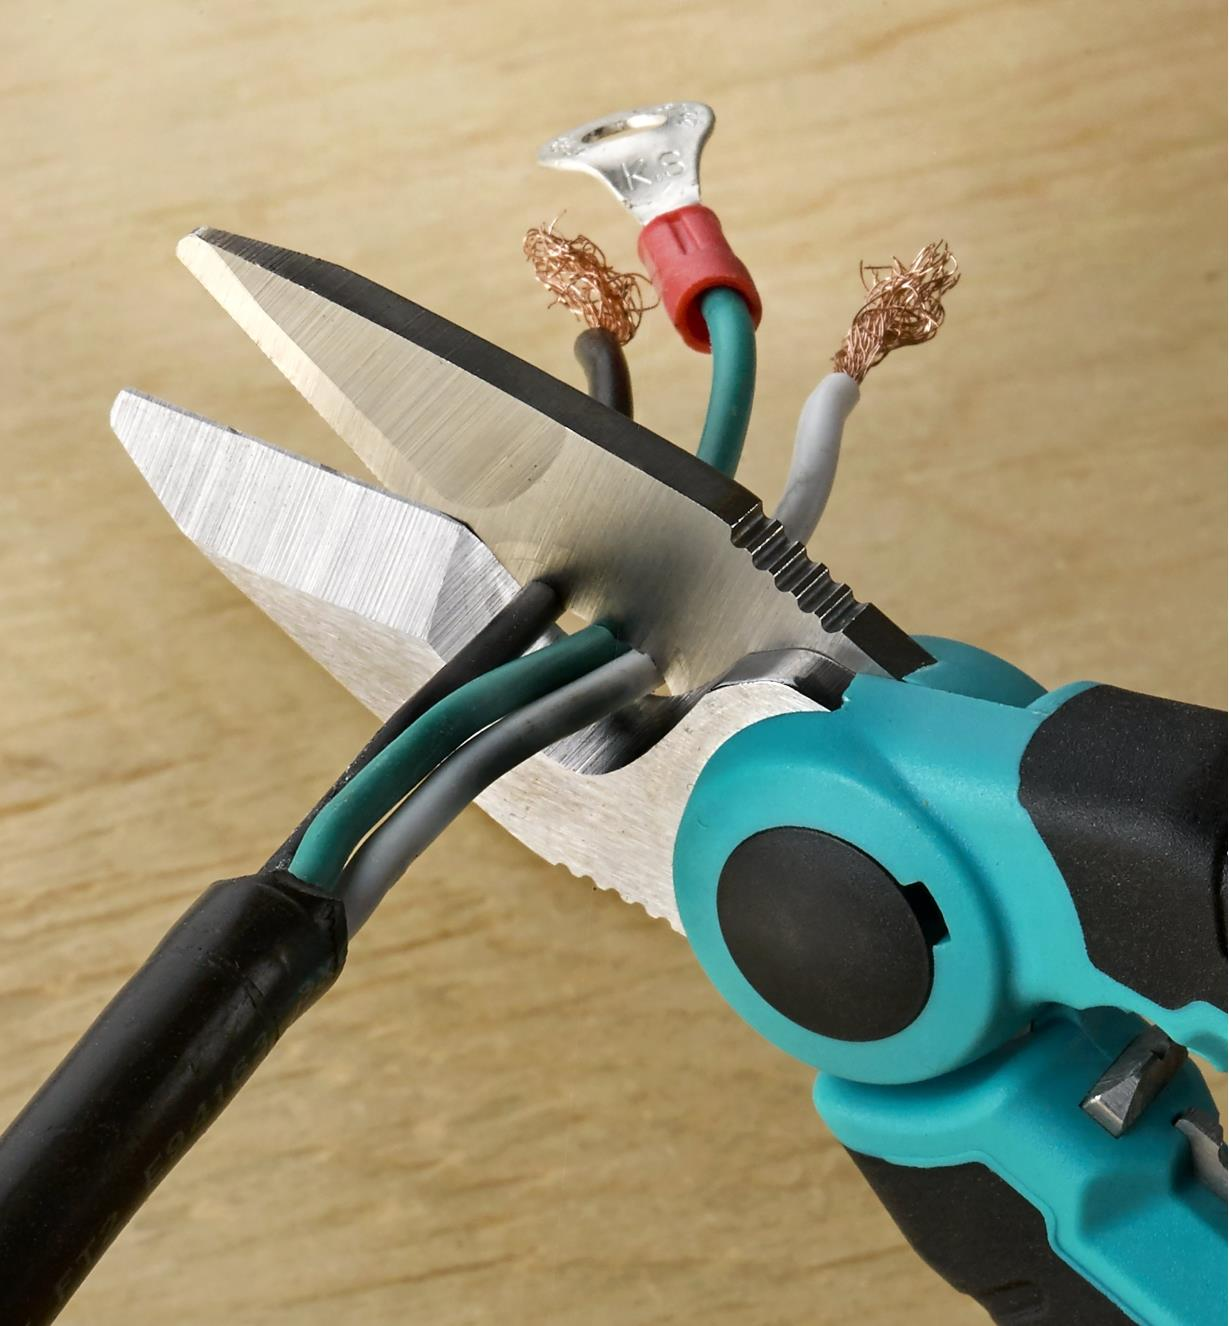 A close view of the electrician scissors cutting three-strand conductor cable